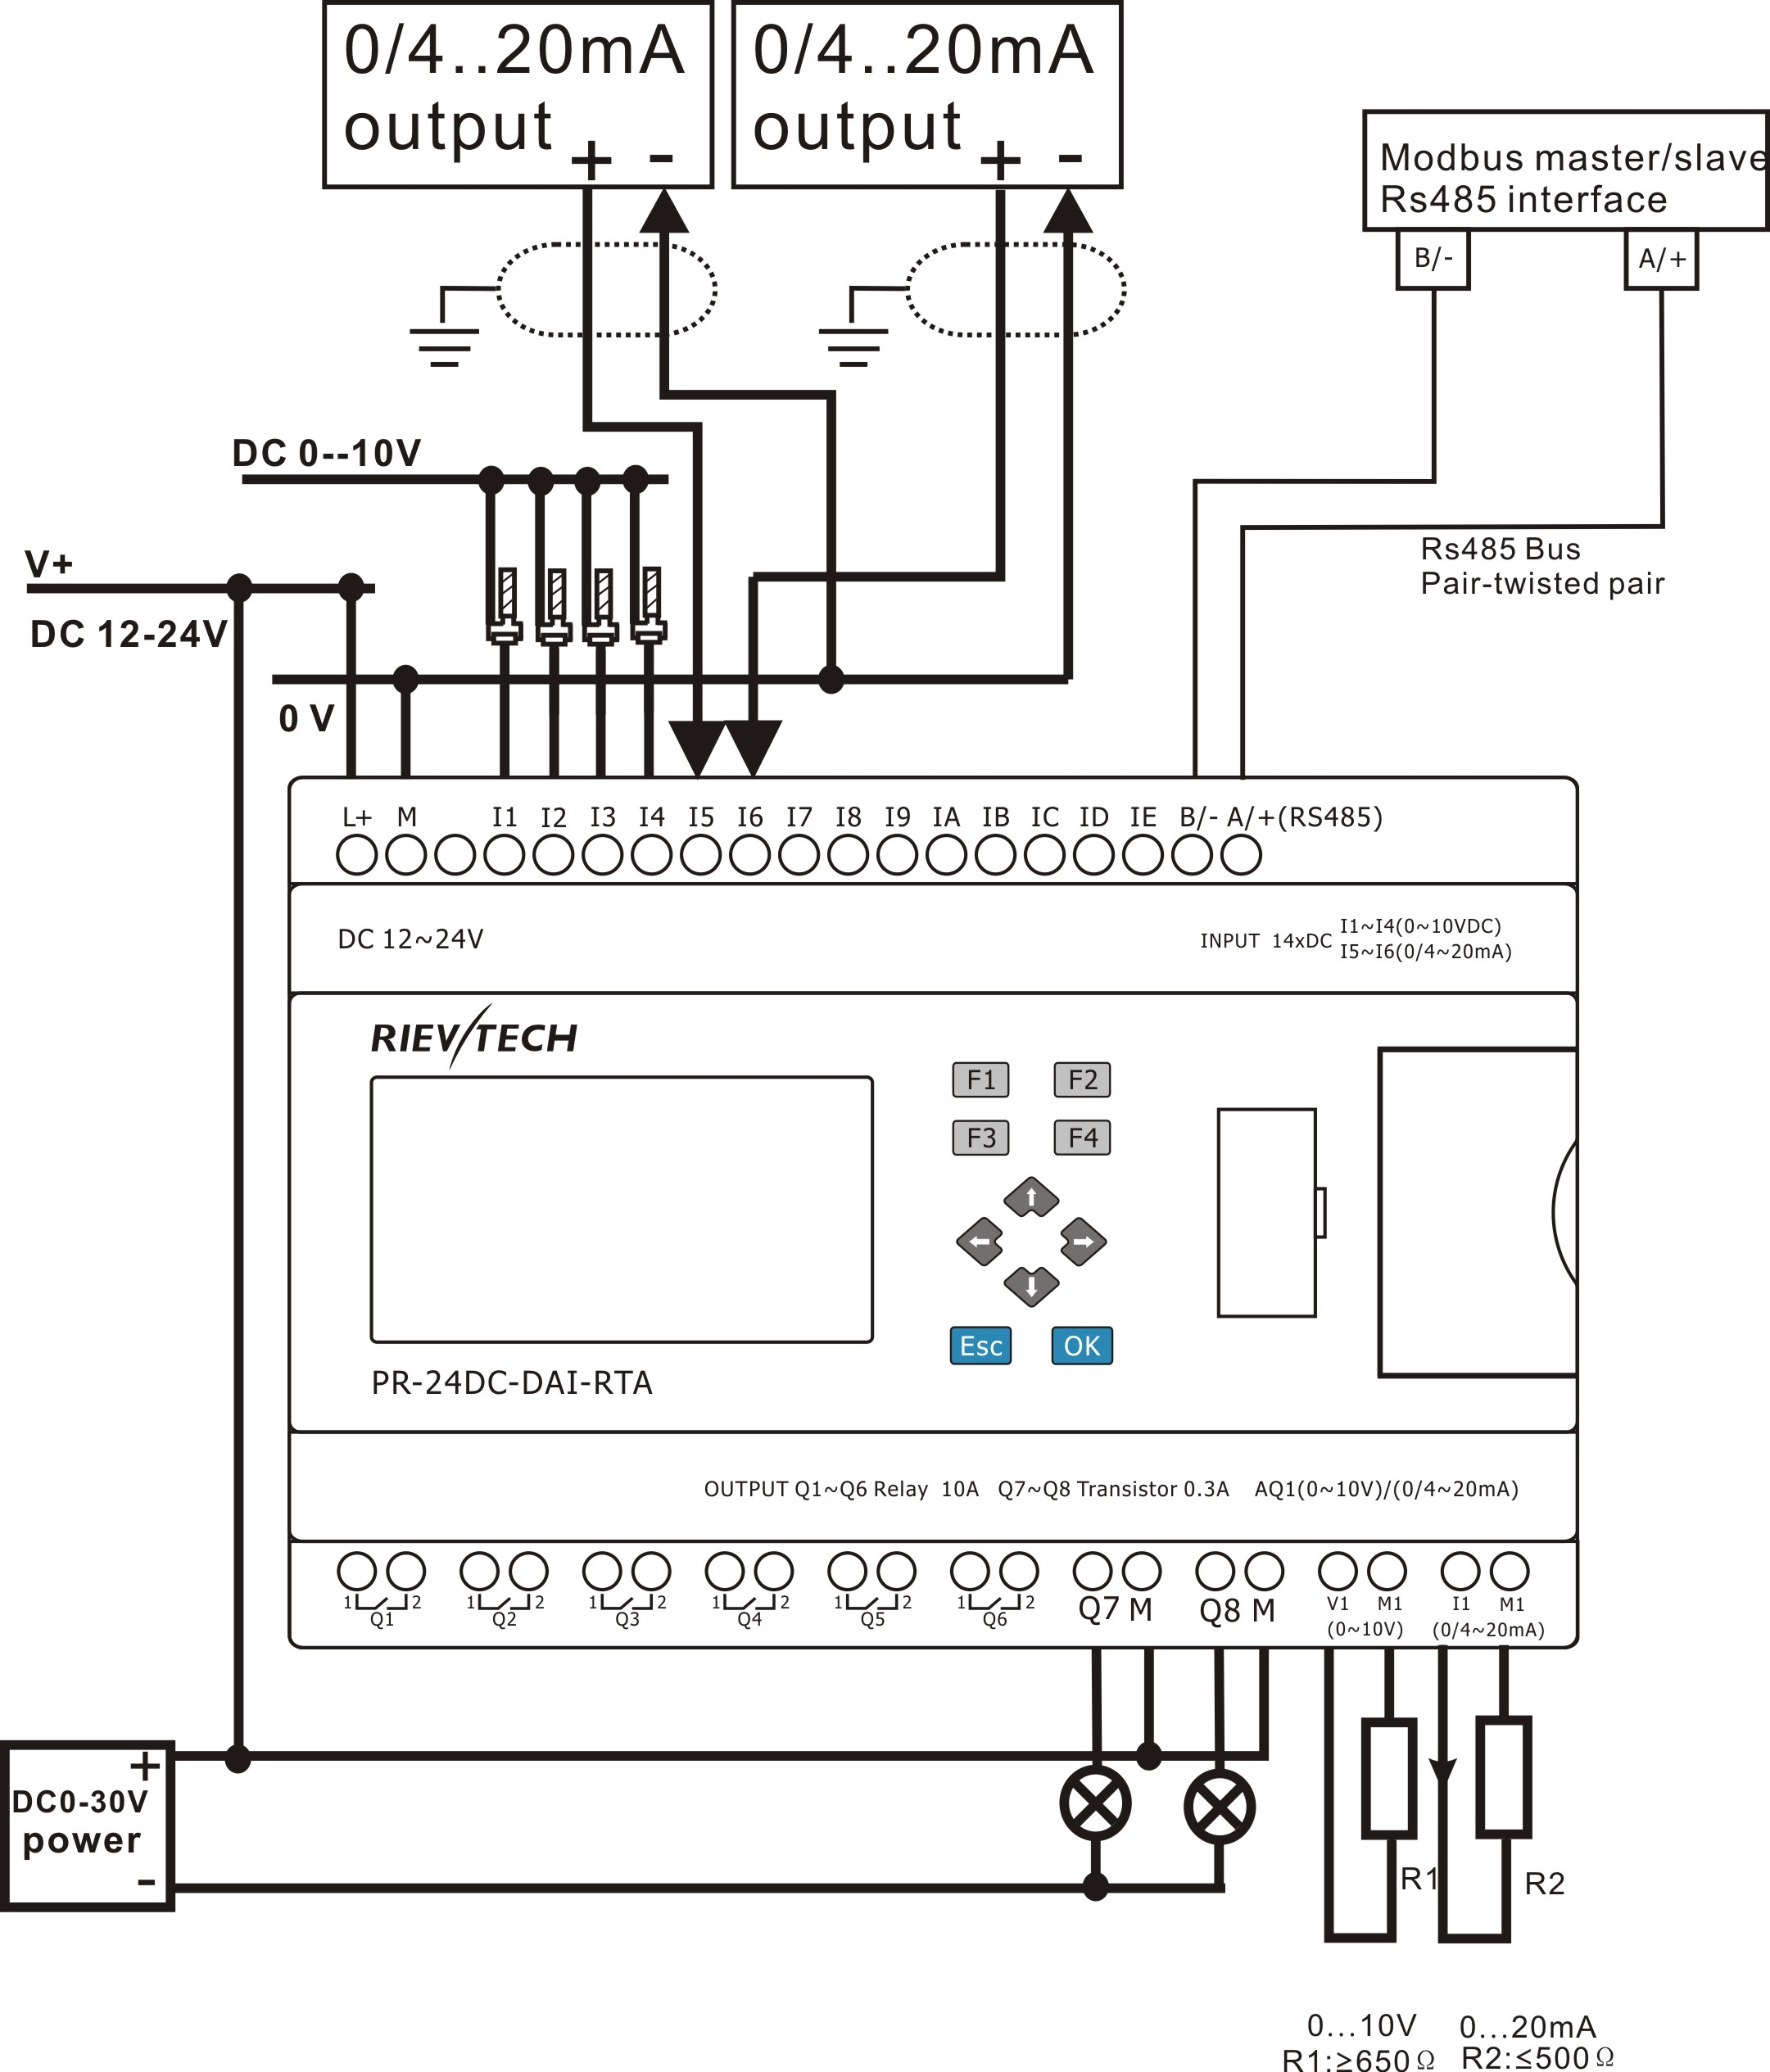 Siemens Micromaster 440 Control Wiring Diagram Download